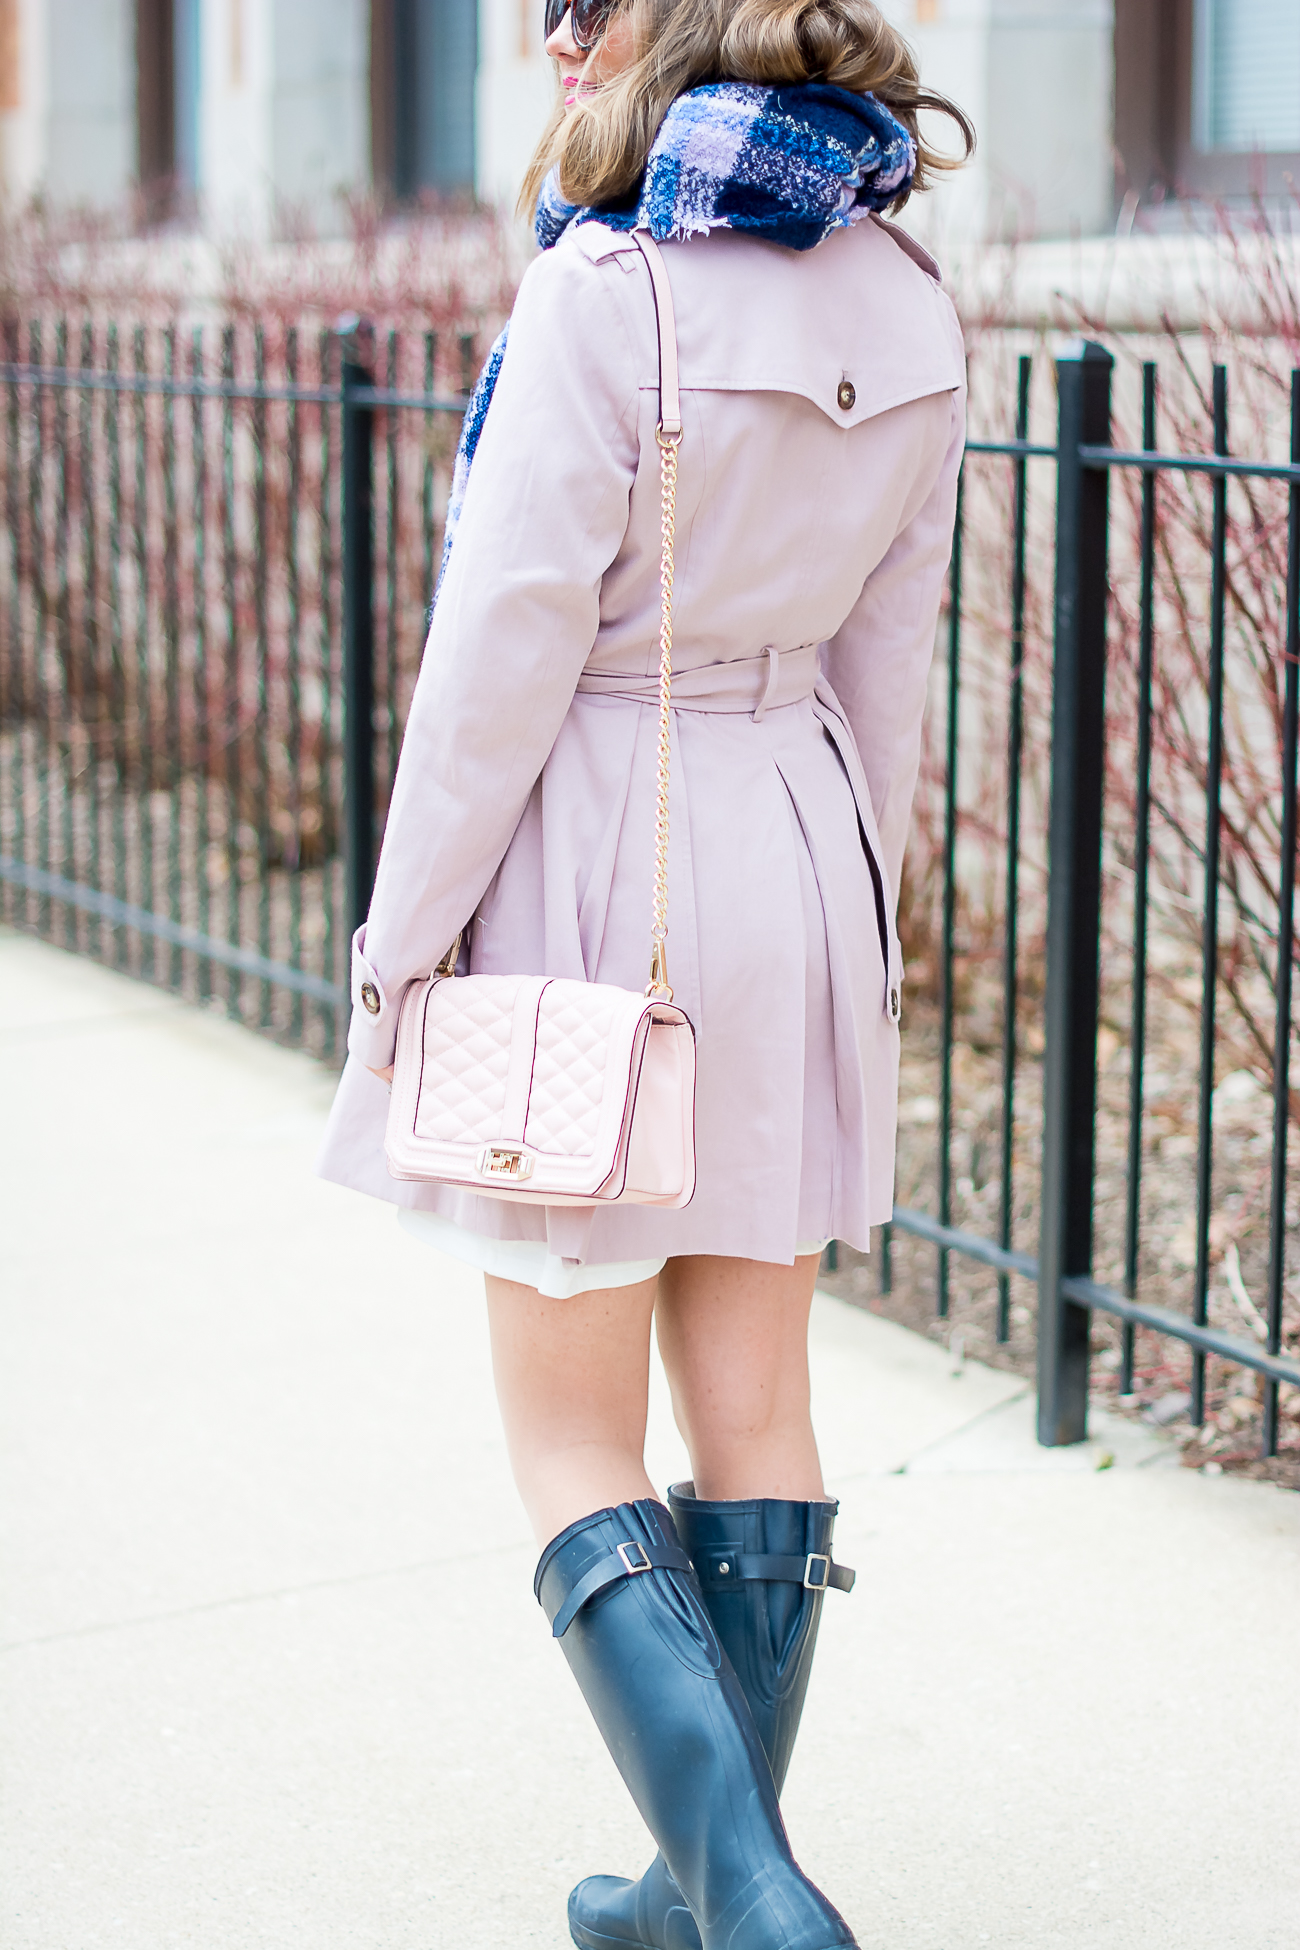 Dressing For Spring In Chicago Wishes Amp Reality